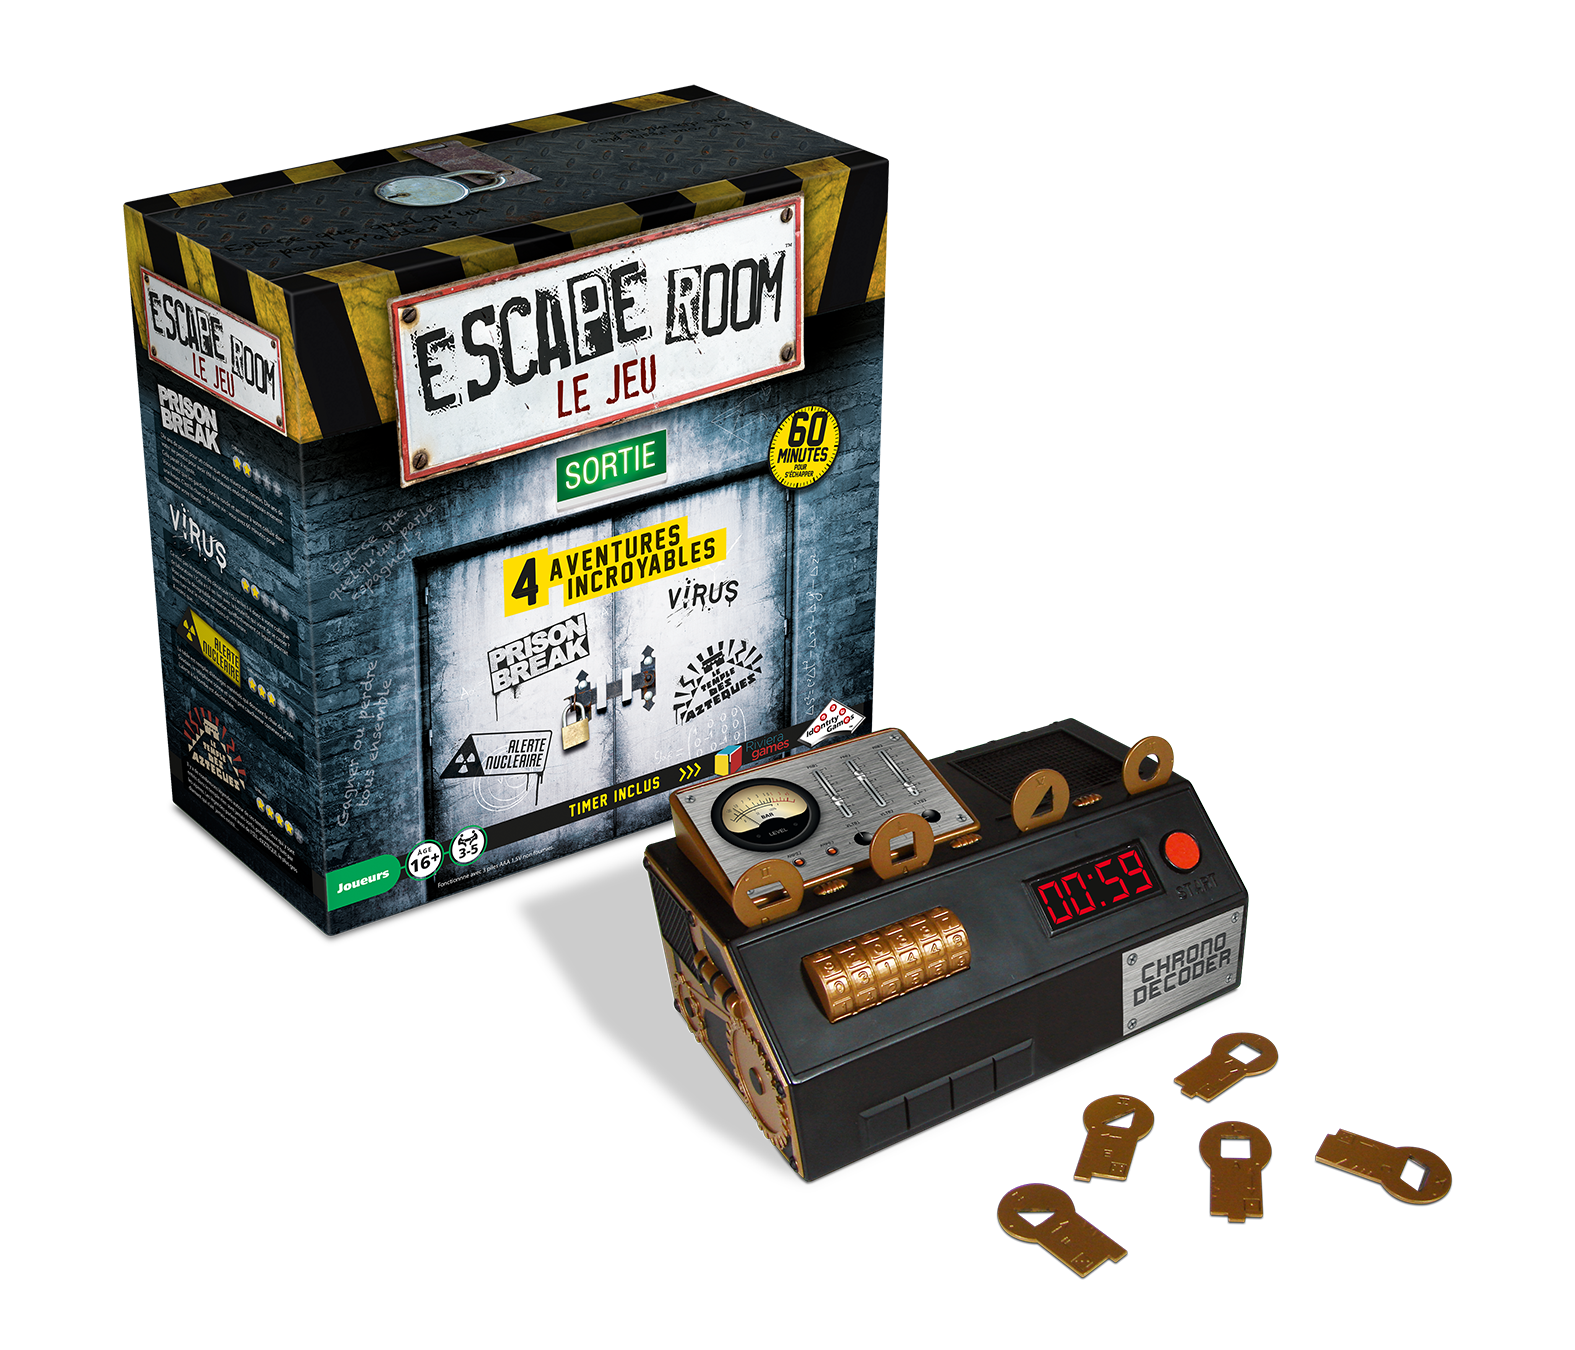 Escape Room 1 - coffret de base | 59,99$ | Location seulement